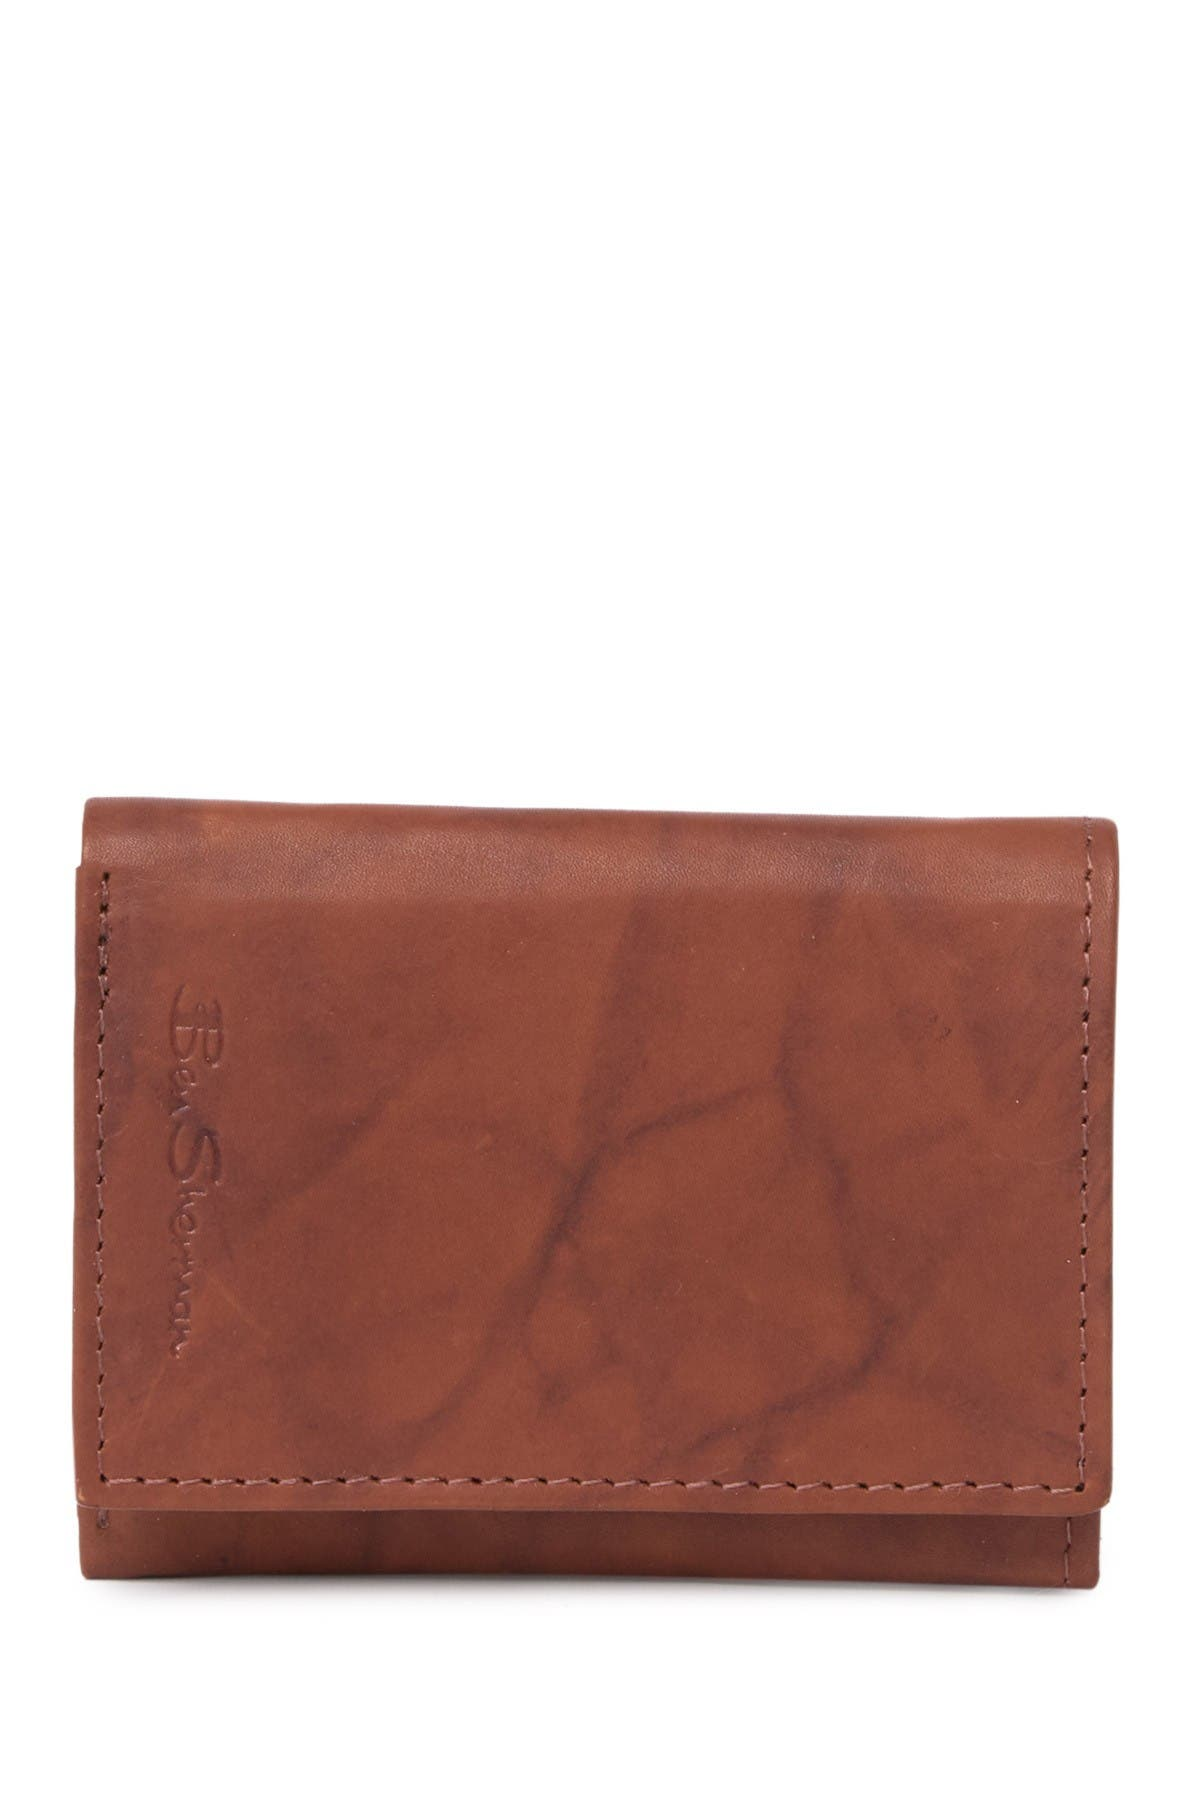 Image of Ben Sherman Manchester Trifold Wallet